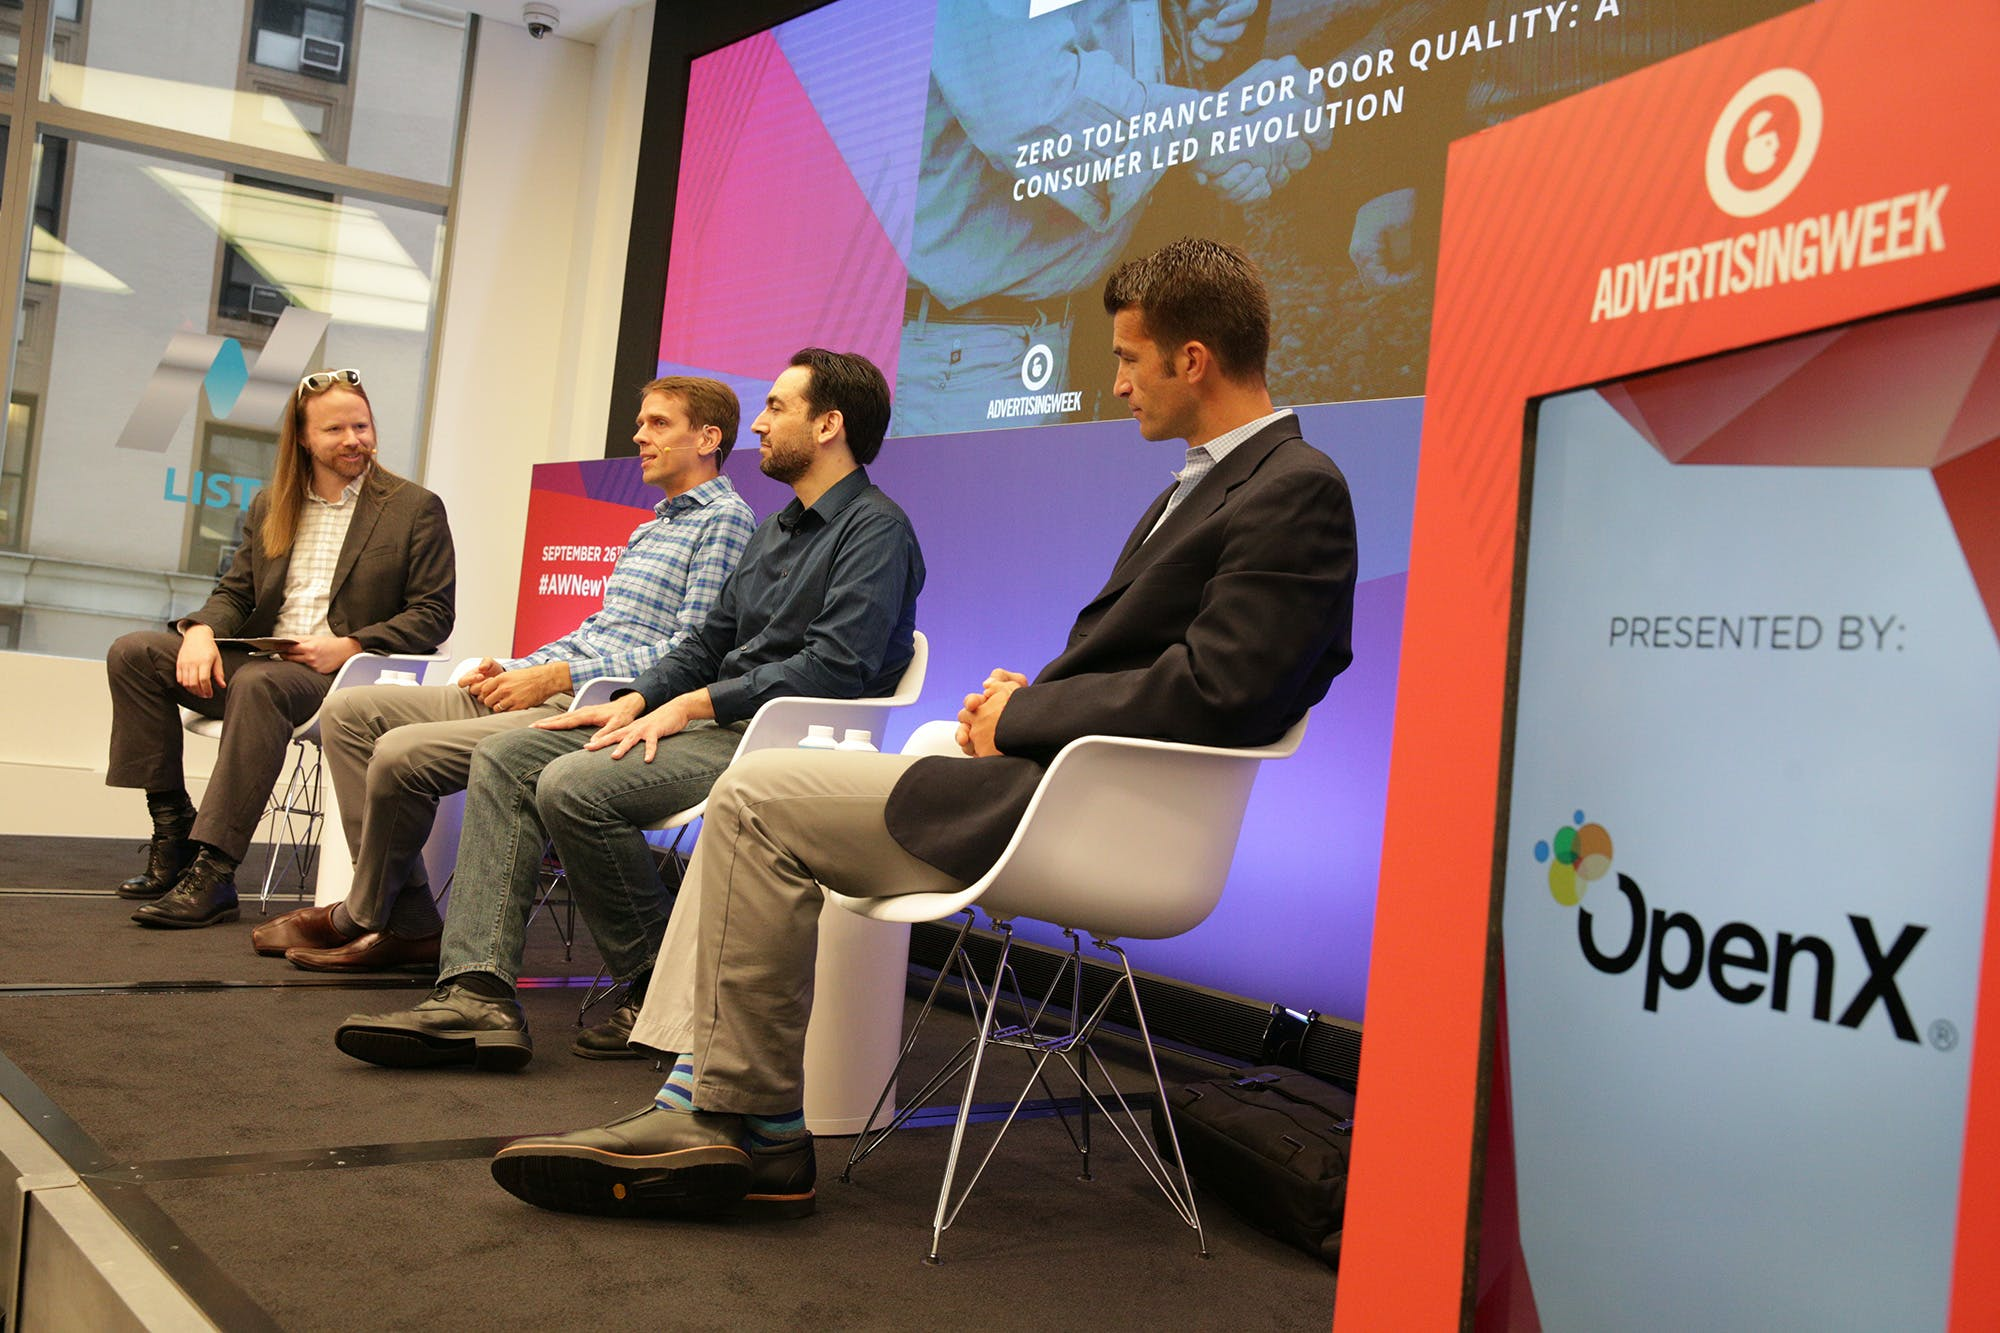 OX Blog AdWeekDay4 2 - Advertising Week New York Day 4: The Quality Conversation Continues